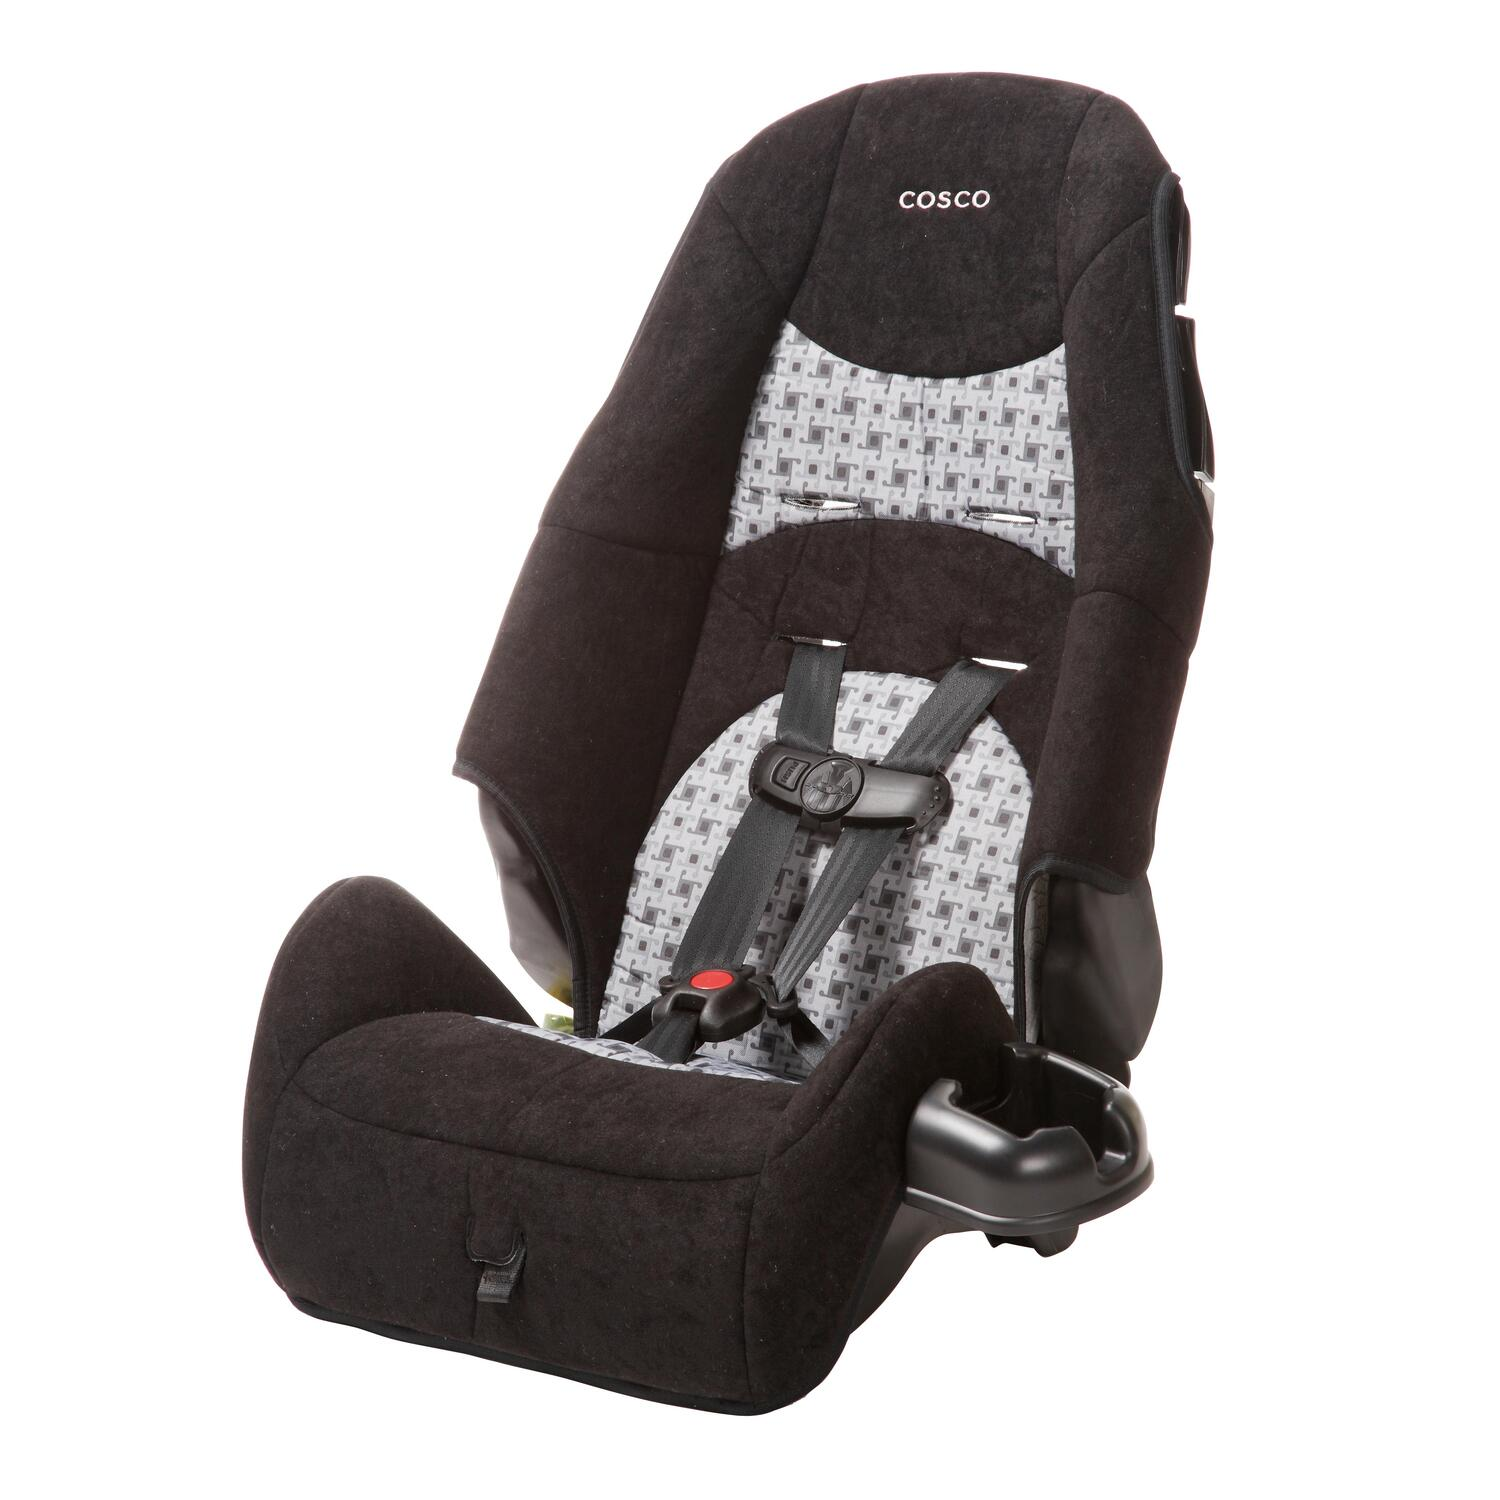 cosco high back booster car seat from to ojcommerce. Black Bedroom Furniture Sets. Home Design Ideas